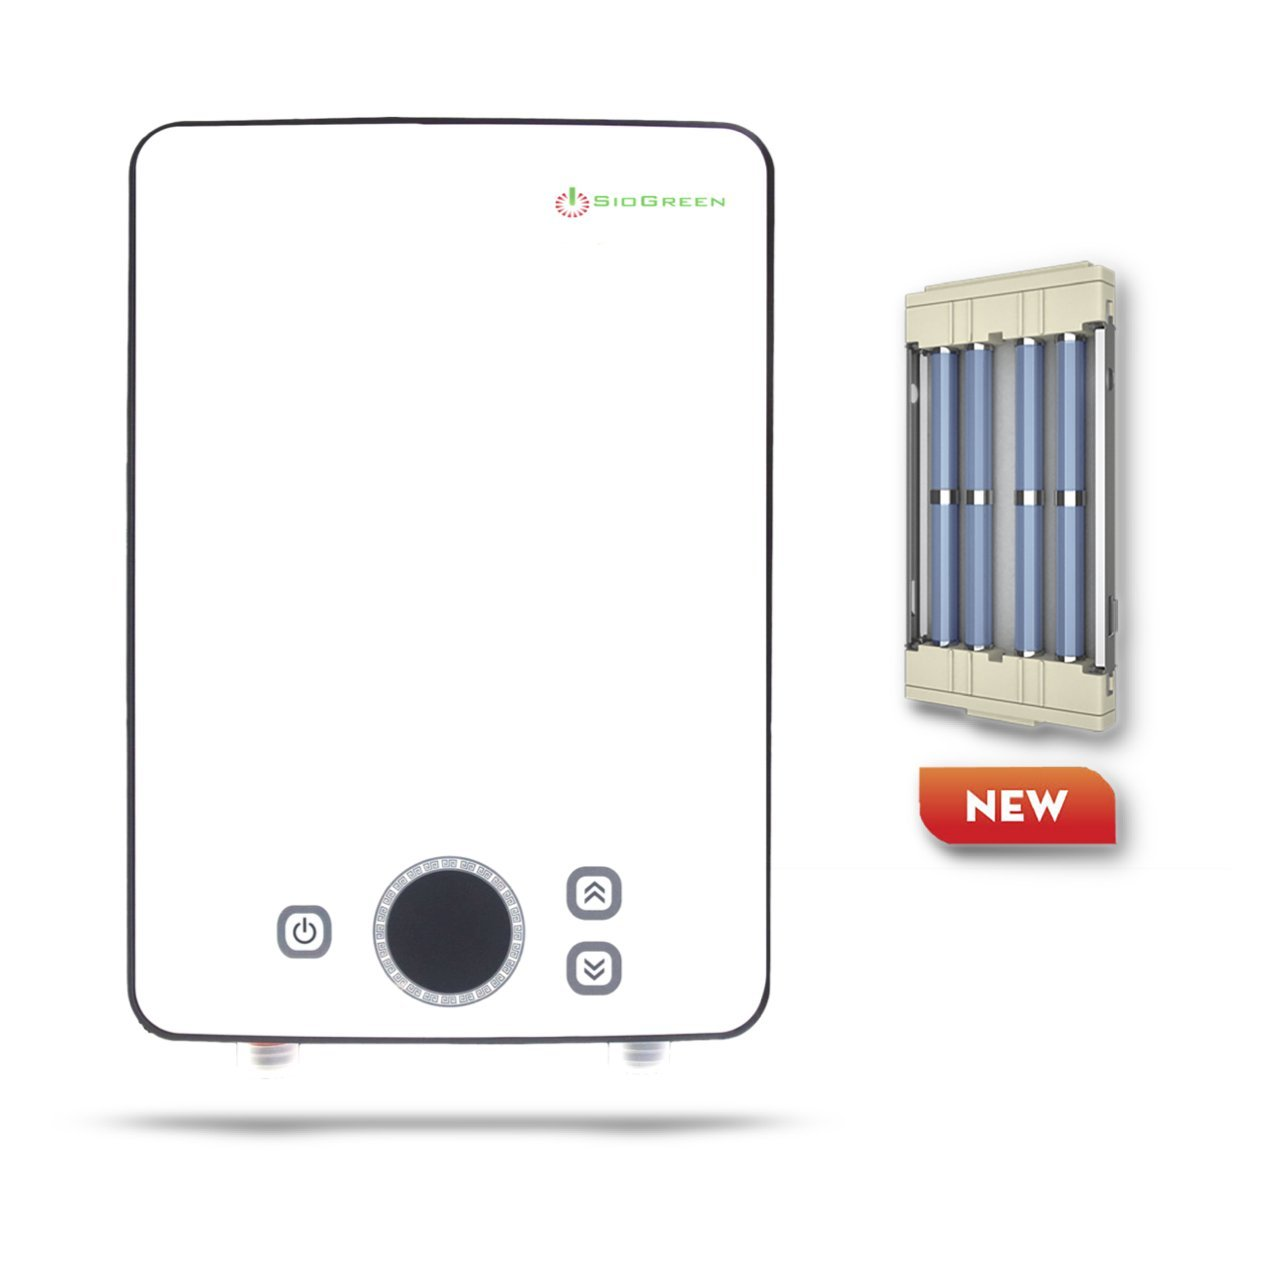 SioGreen IR30 POU. 120V/3.4kW/30A. Infrared Electric Hot Tankless Water Heater. Hand Wash Only. No Corrosion. No Limescale by SioGreen